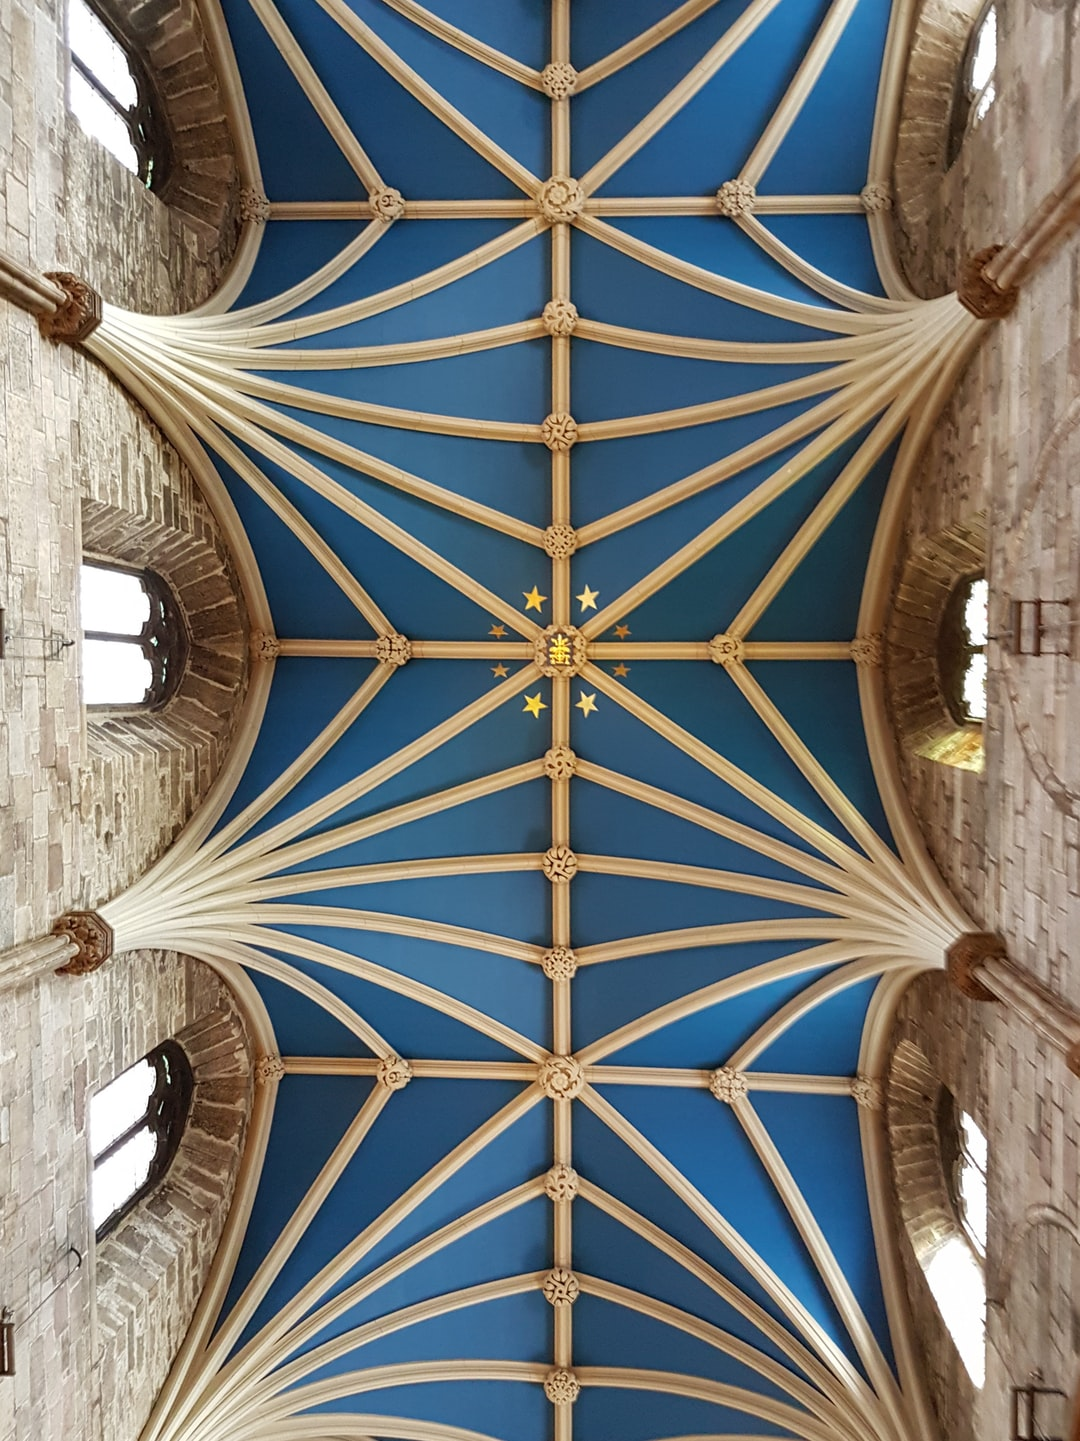 Ceiling of Edinburgh